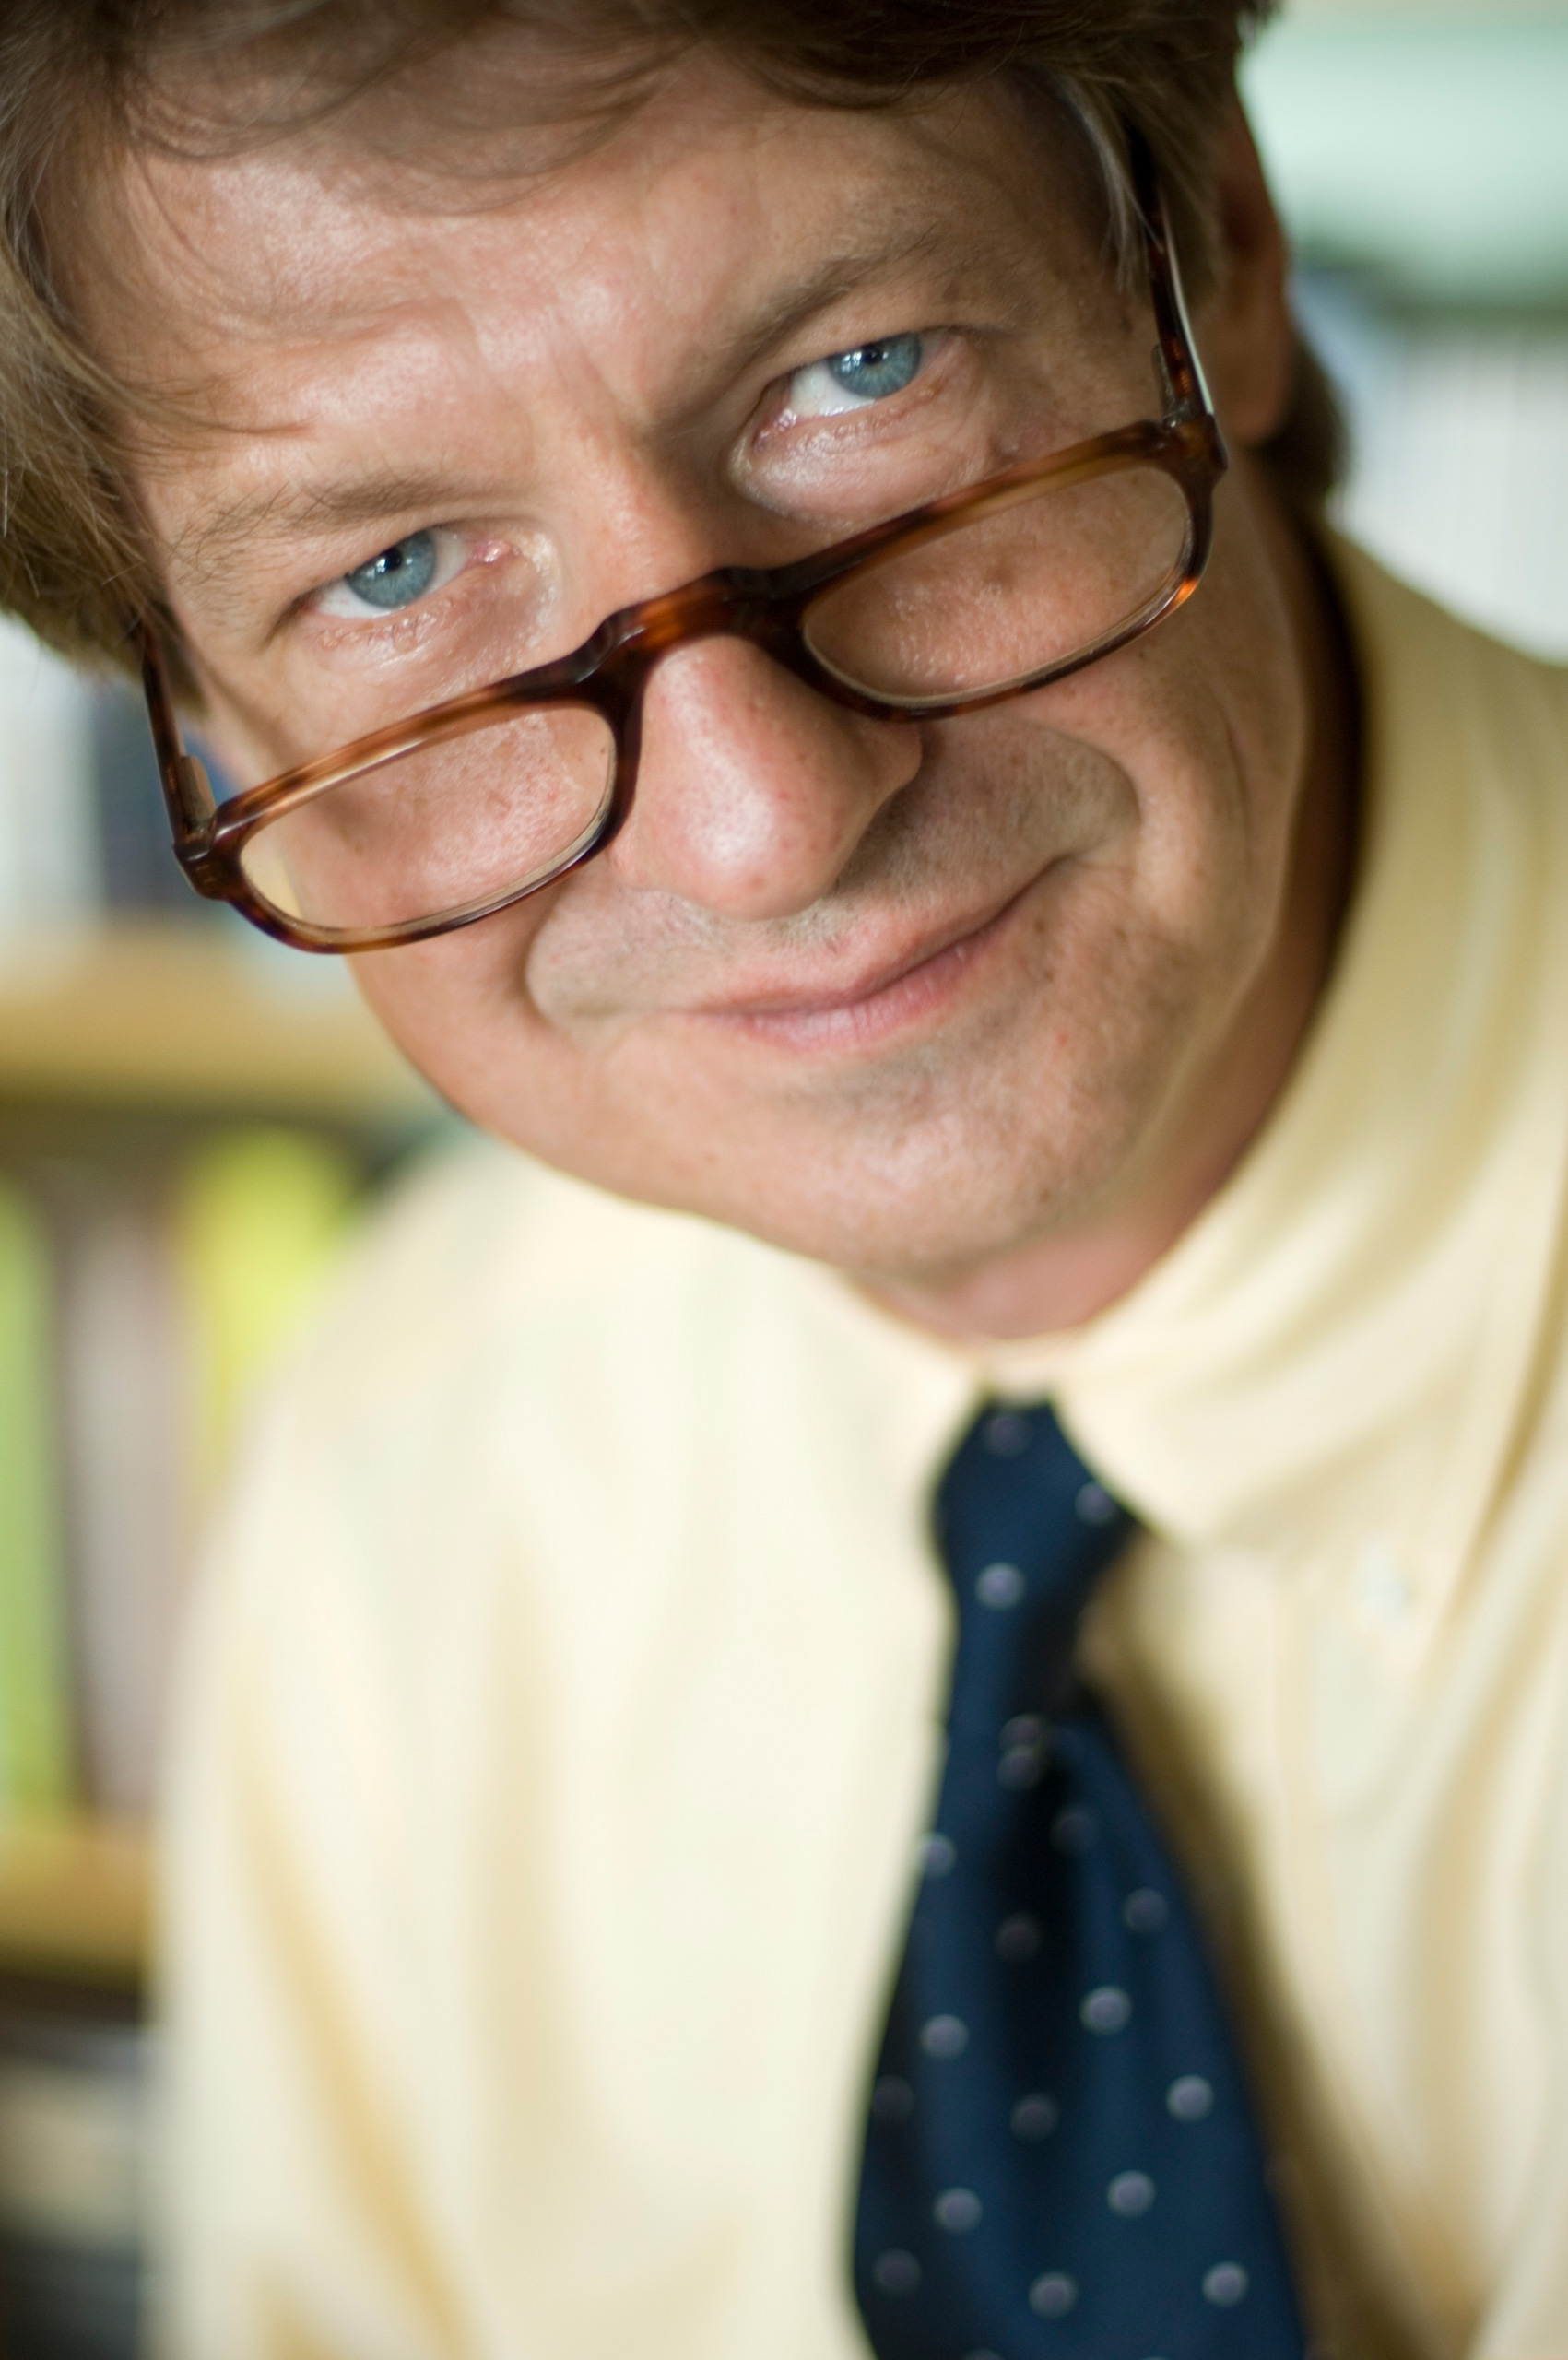 P. J. O'Rourke, close up of O'Rourke looking over his glasses